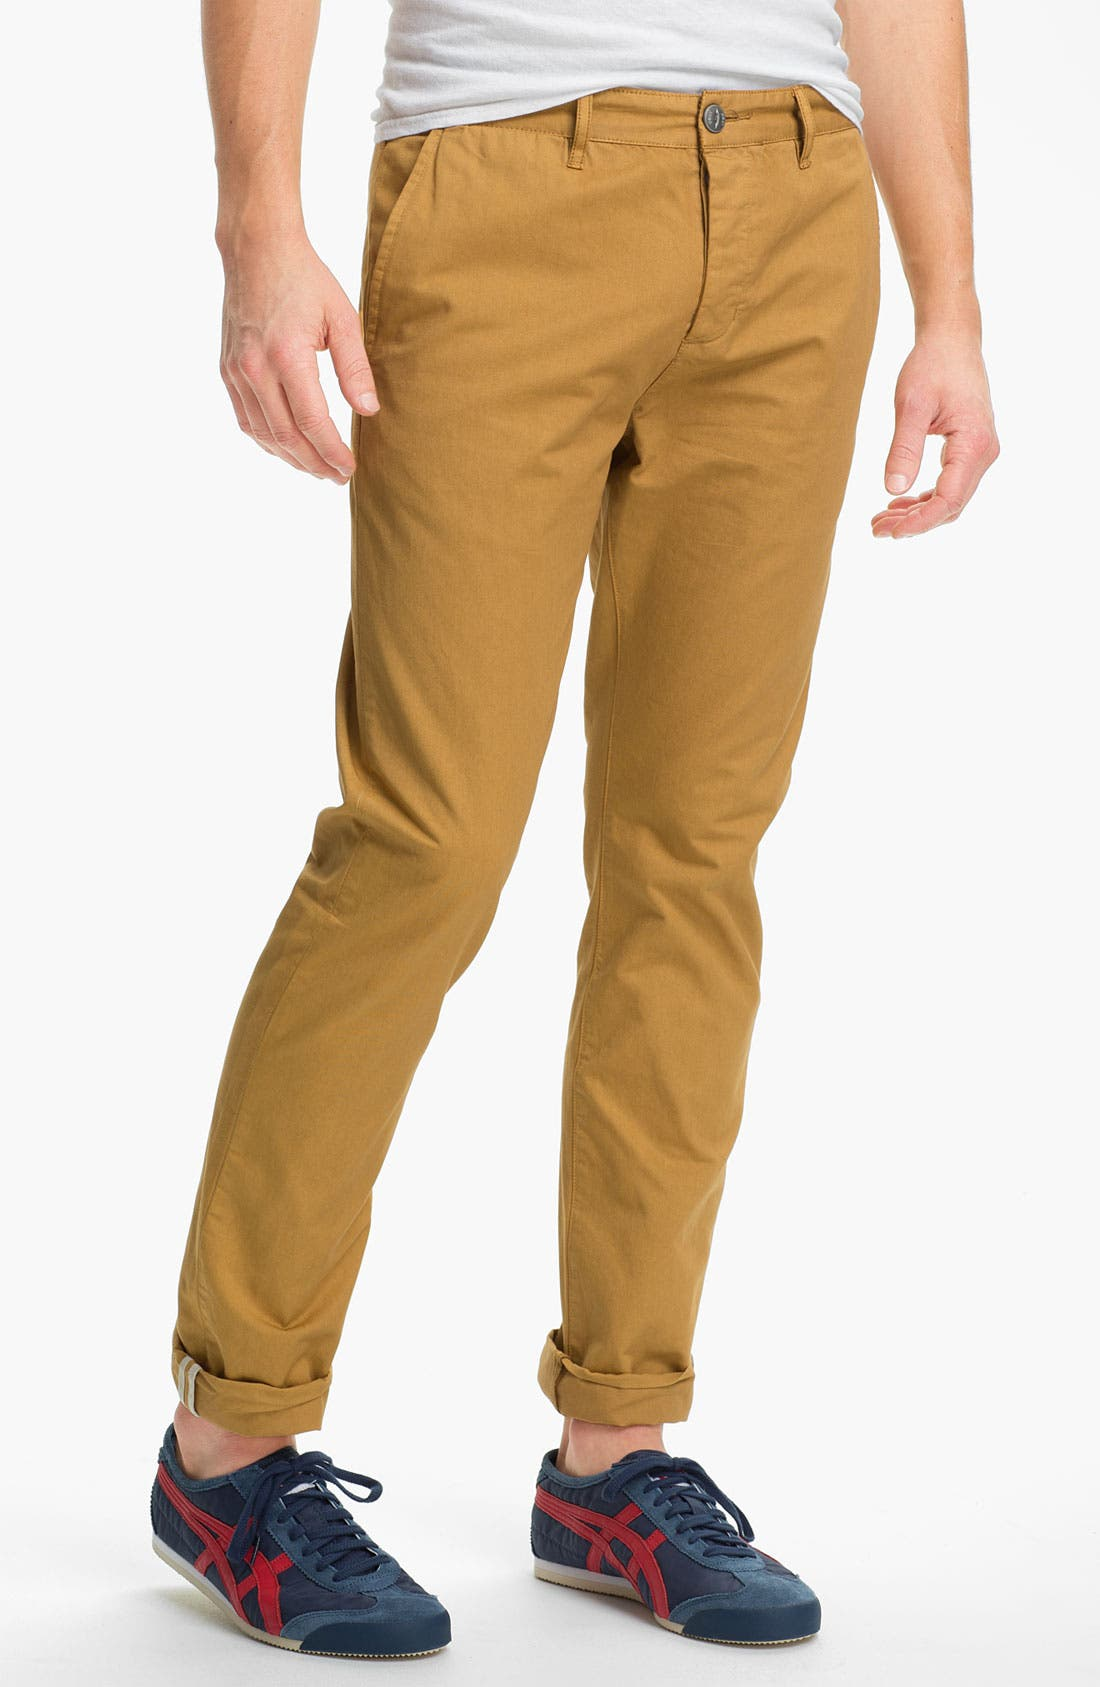 Alternate Image 1 Selected - Obey 'Classique' Slim Straight Leg Chinos